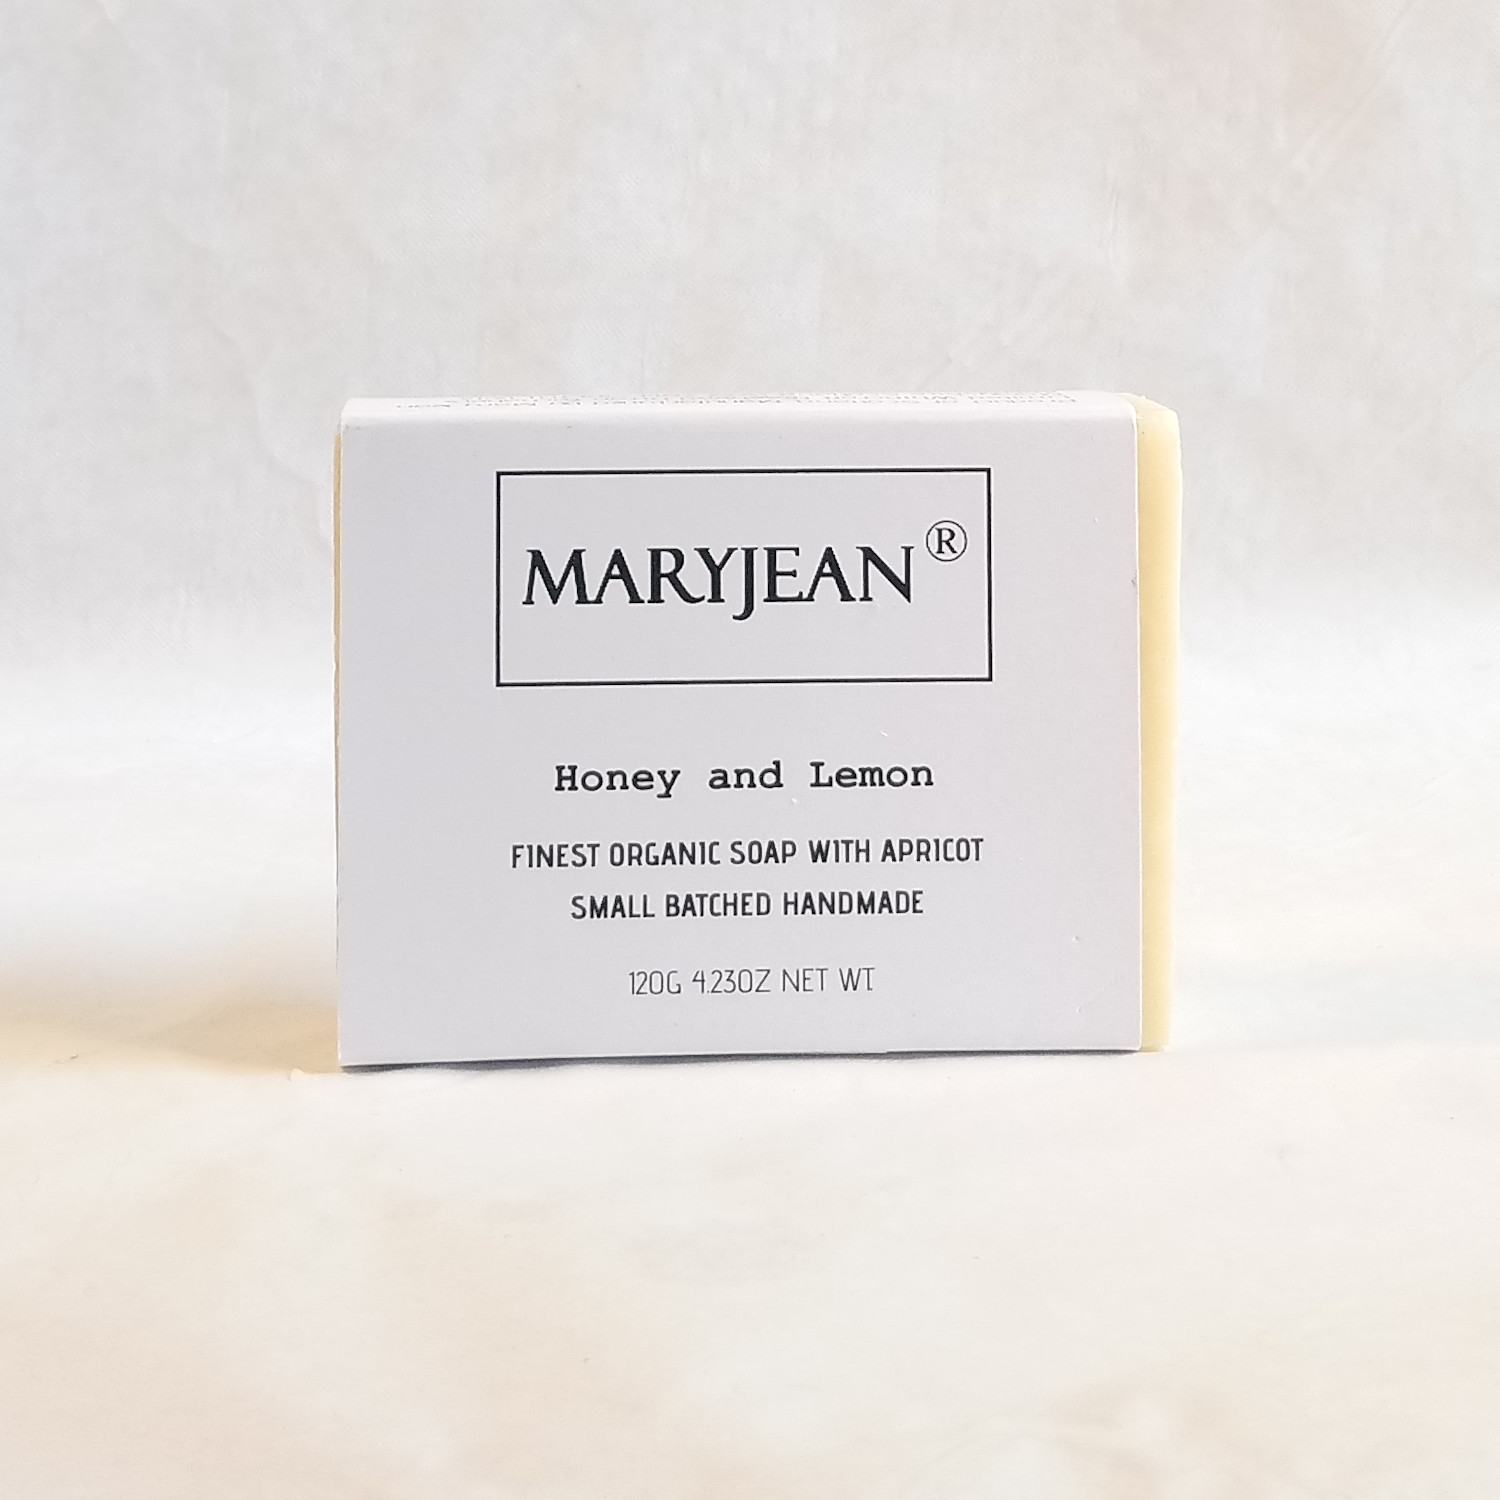 A quality zesty Lemon bar of soap with Honey and Apricot for dry mature skin types moisturised with Cocoa seed butter resulting in maximum hydration all day protection Organic Scottish Honey Lemon Soap Handmade With Apricot